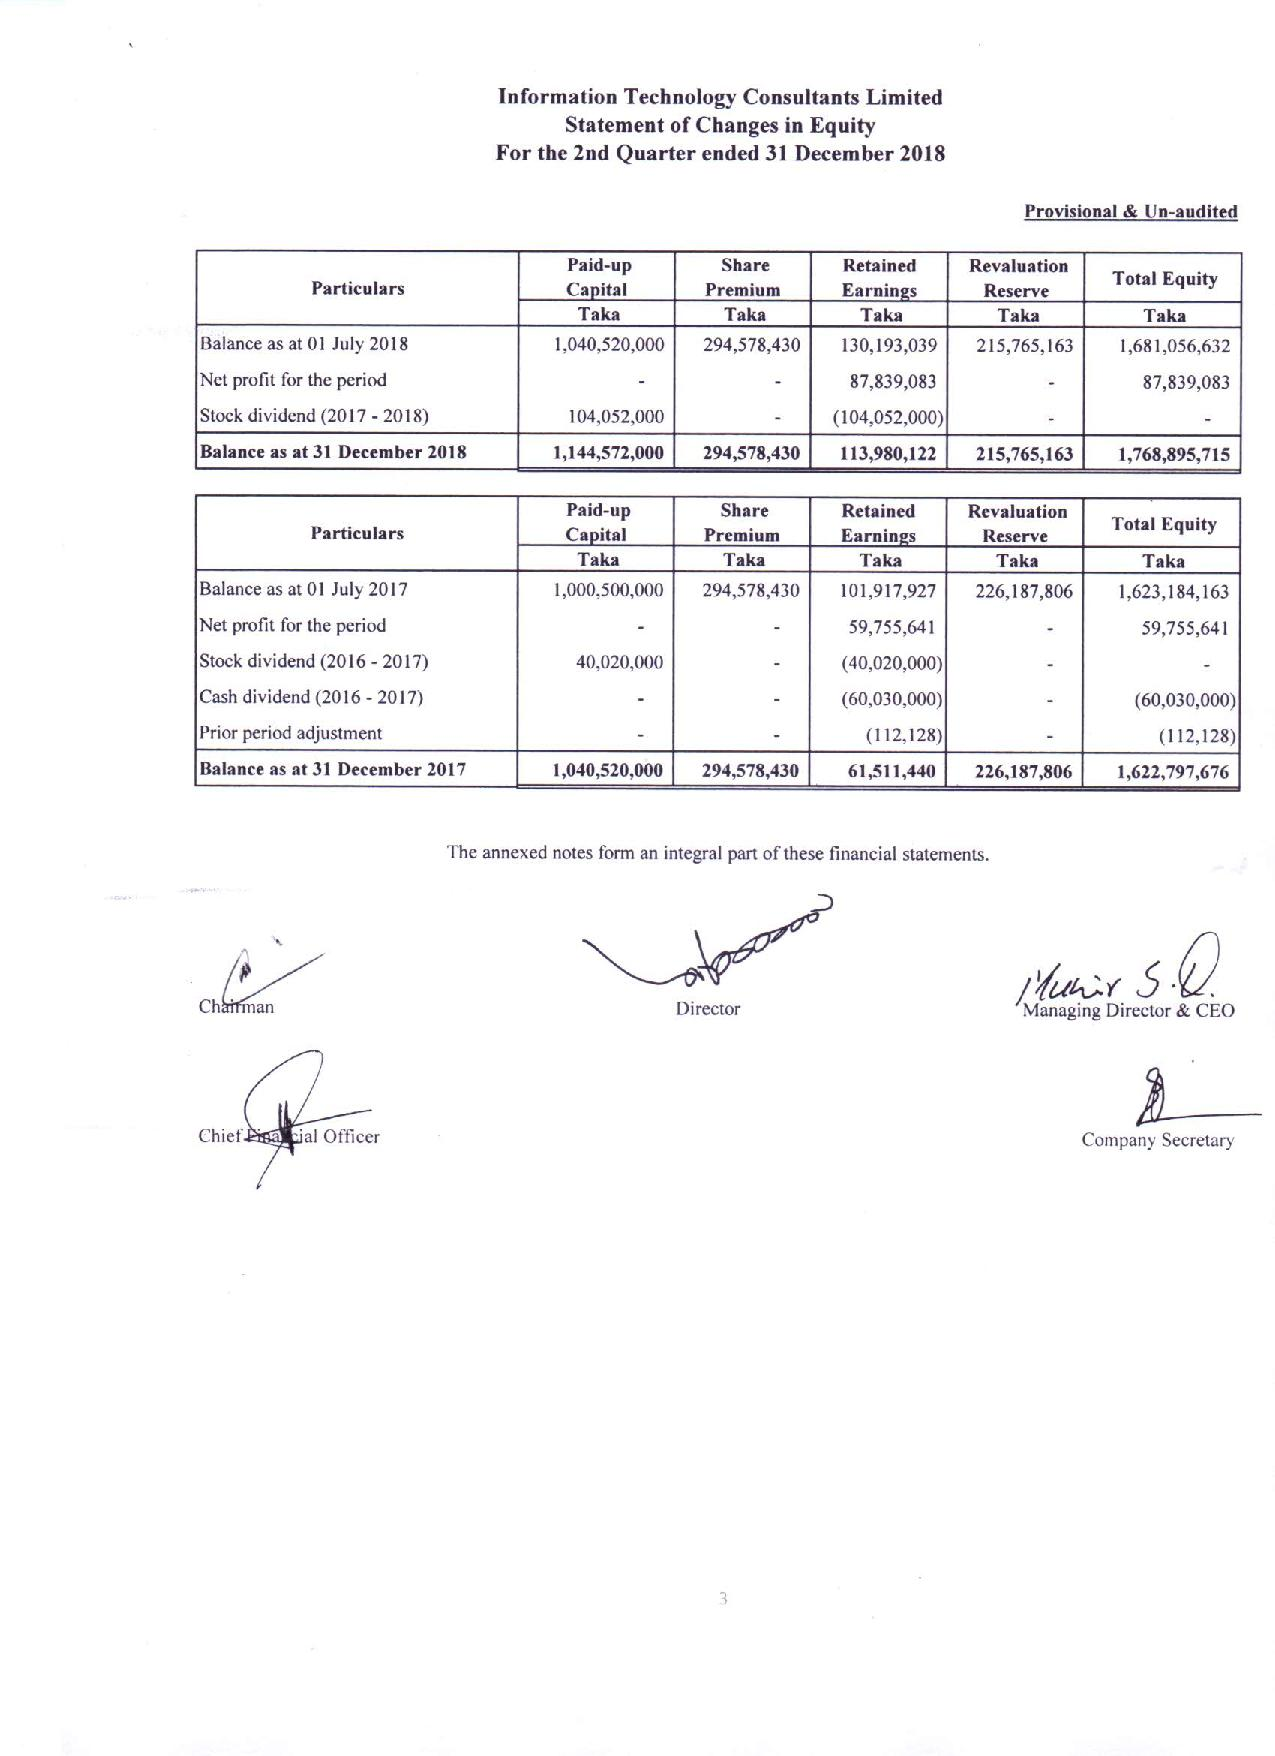 2nd Quarterly Financial Statements of ITC-page-004